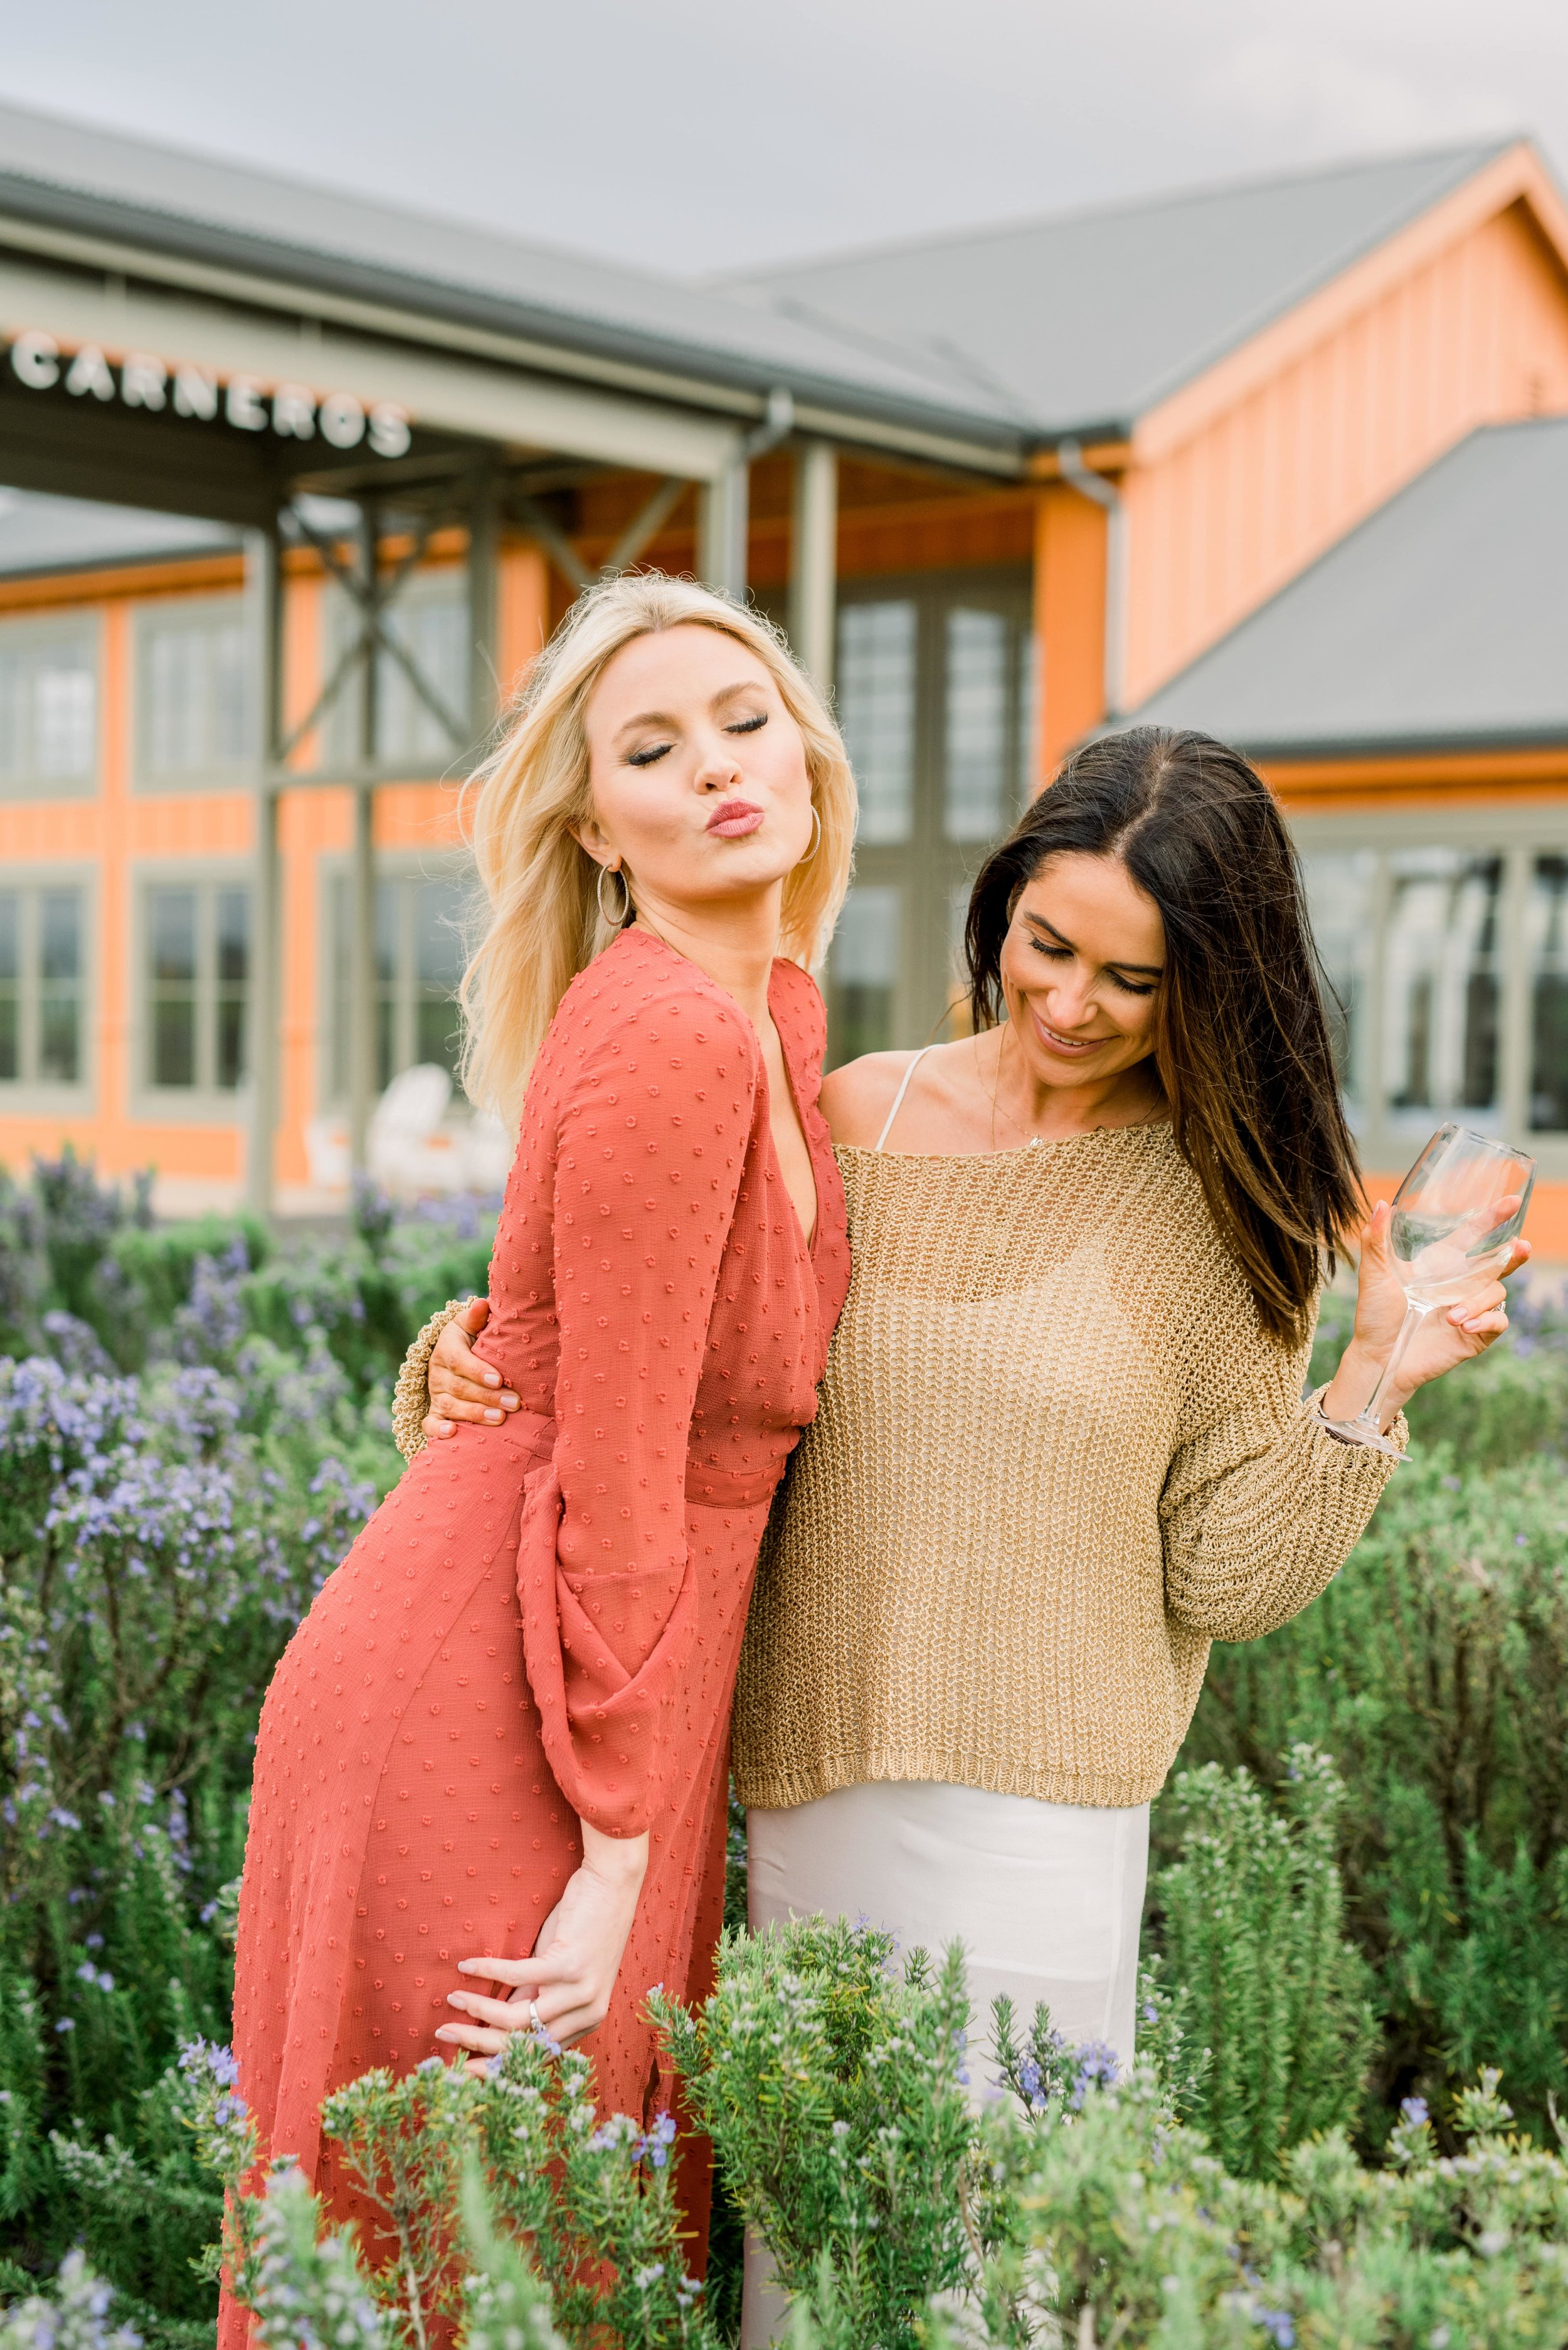 Candice and McKenna_Janine_Licare_Photography-110-min.jpg